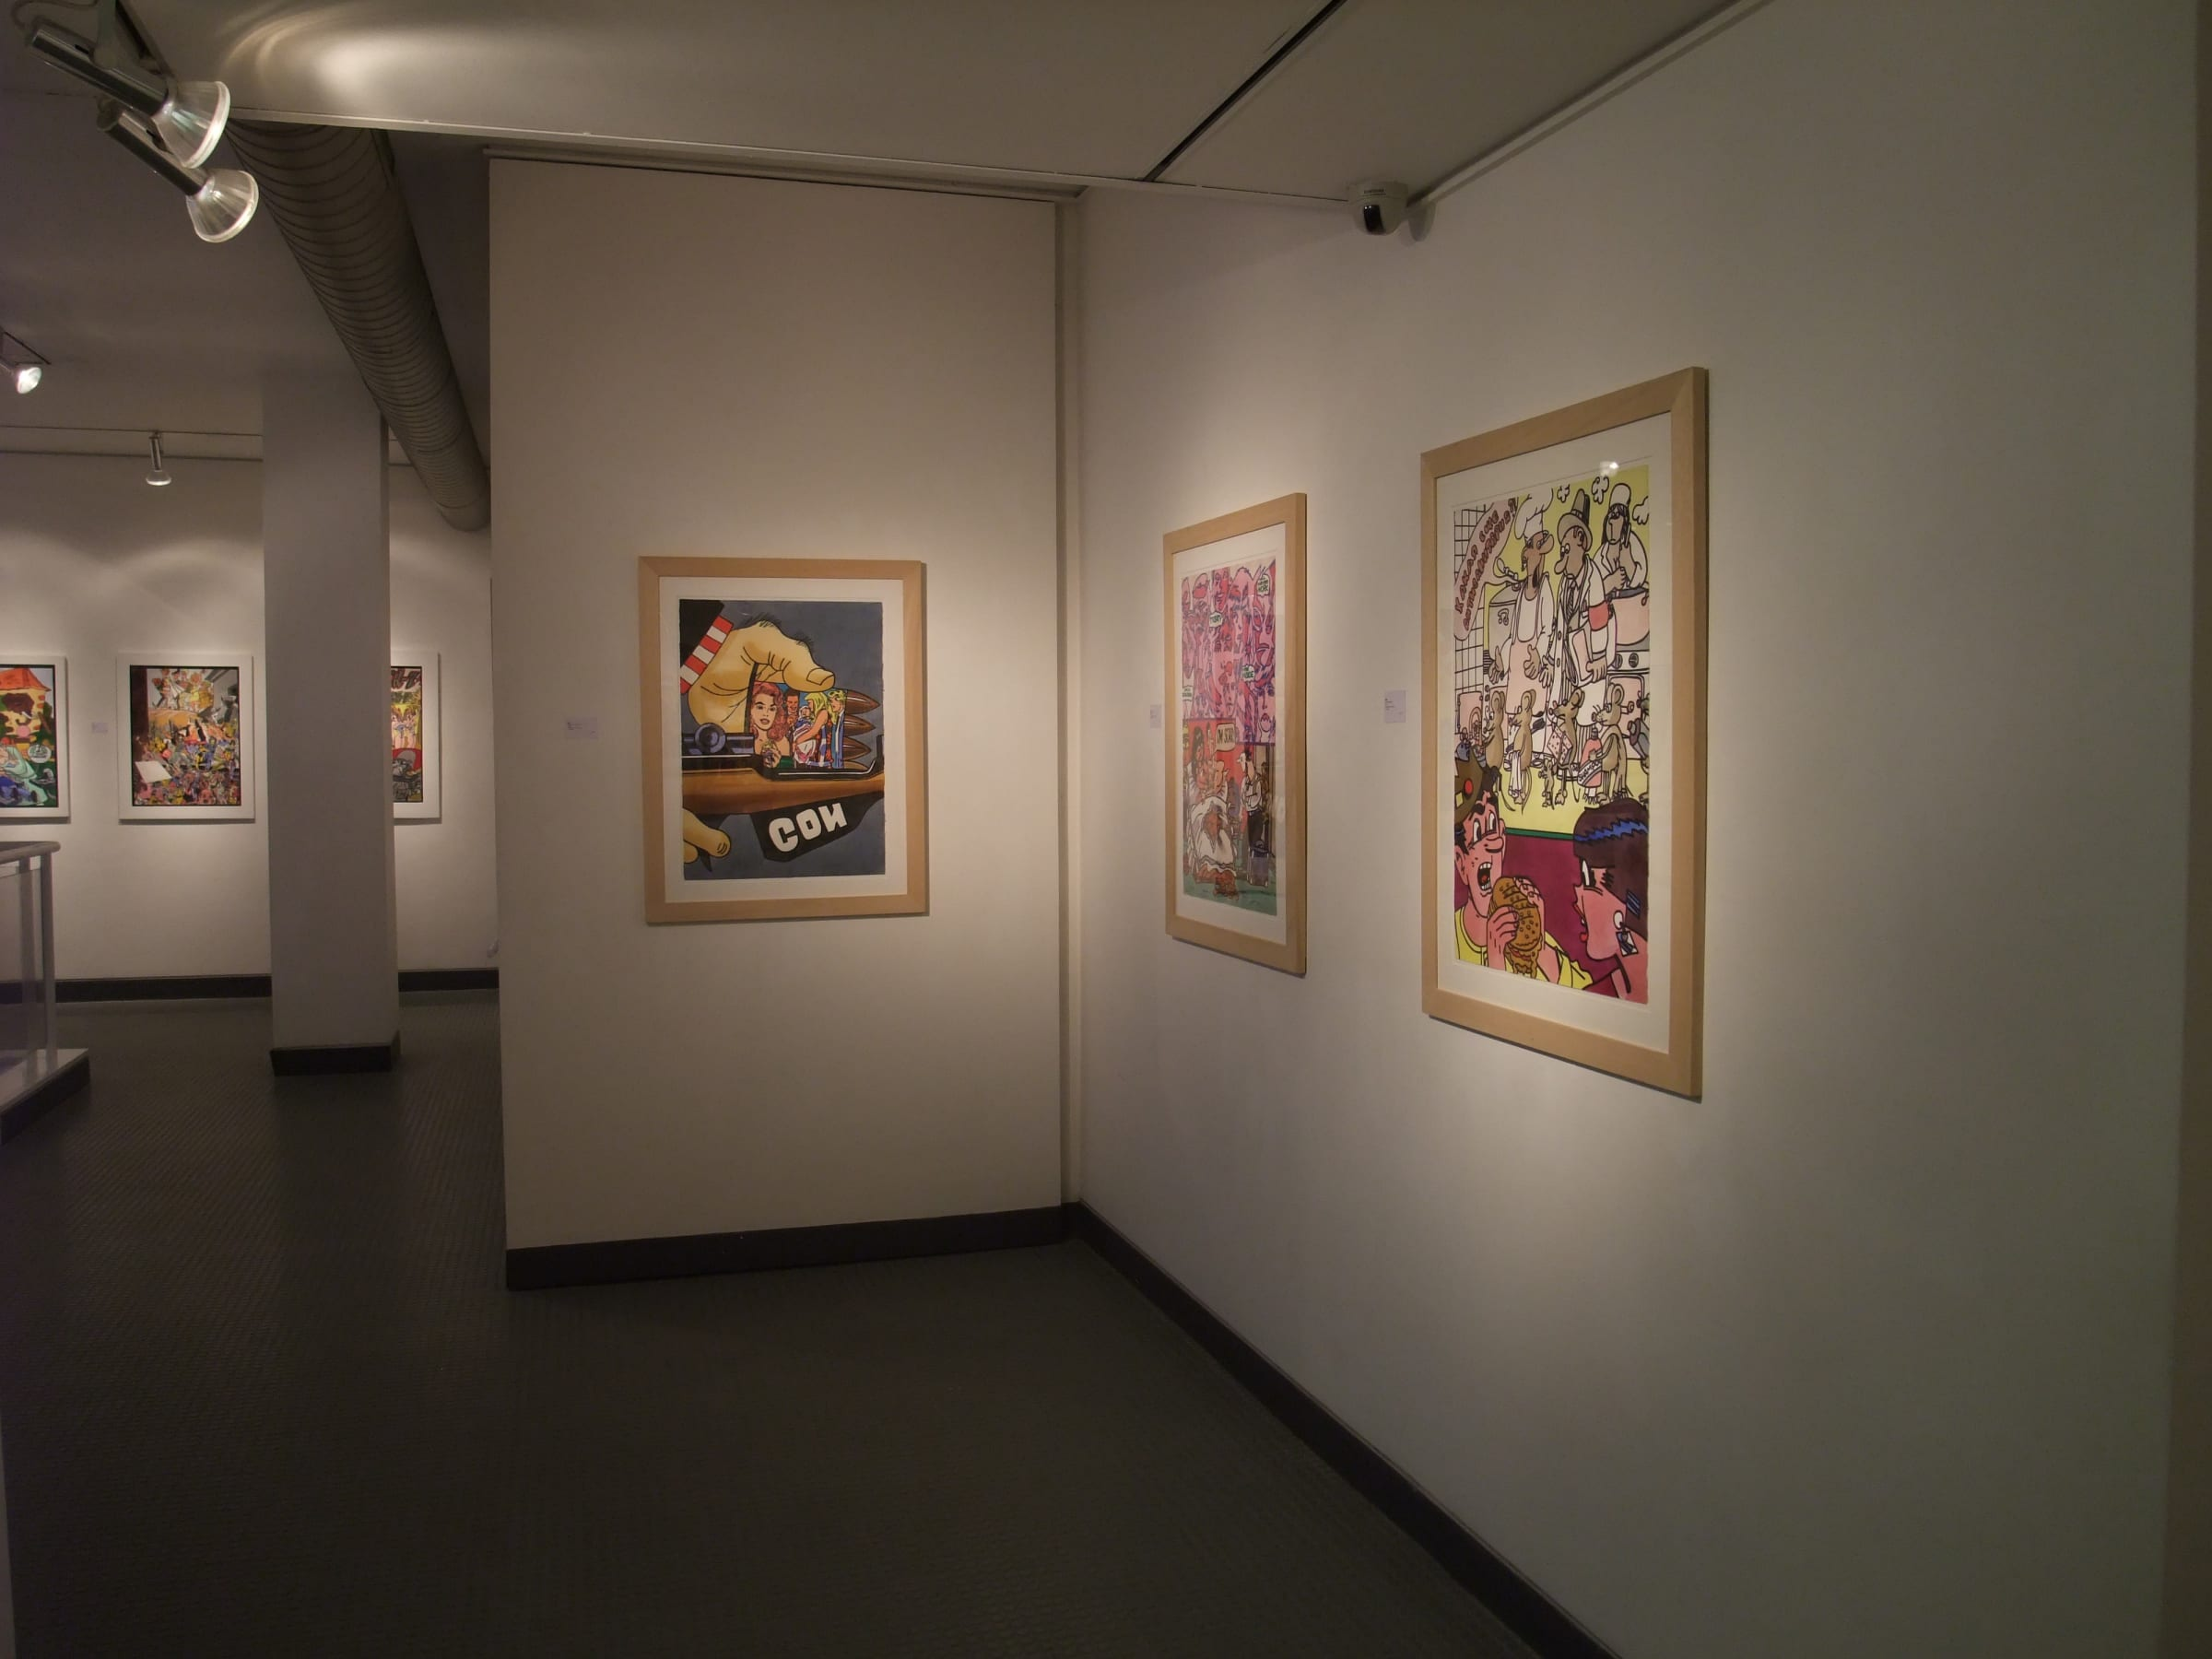 "<span class=""link fancybox-details-link""><a href=""/exhibitions/96/works/image_standalone328/"">View Detail Page</a></span><p>ERRÓ 